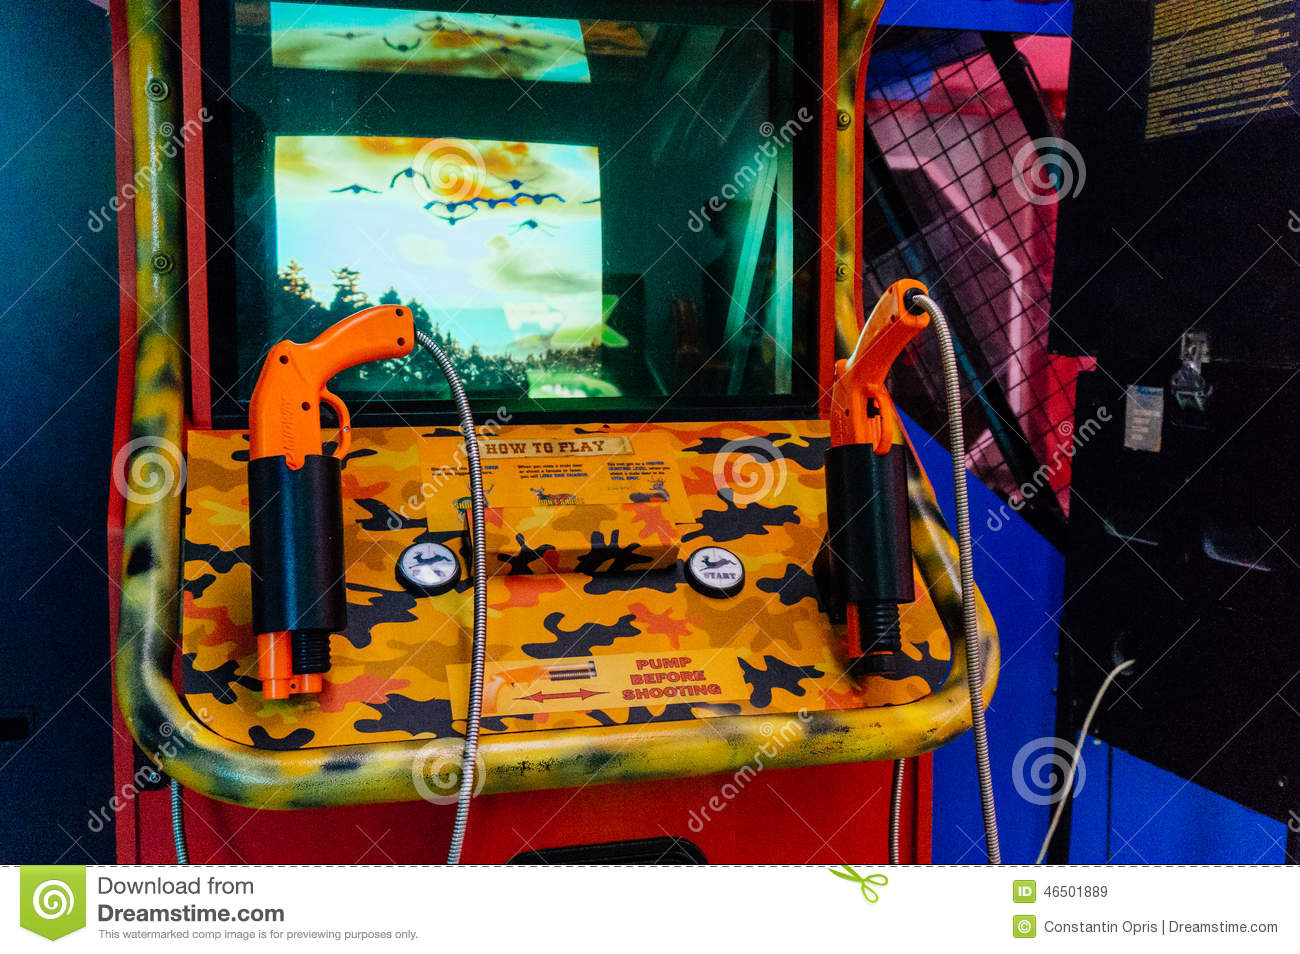 Shooting arcade game editorial stock image image 46501889 for Arcade fish shooting games